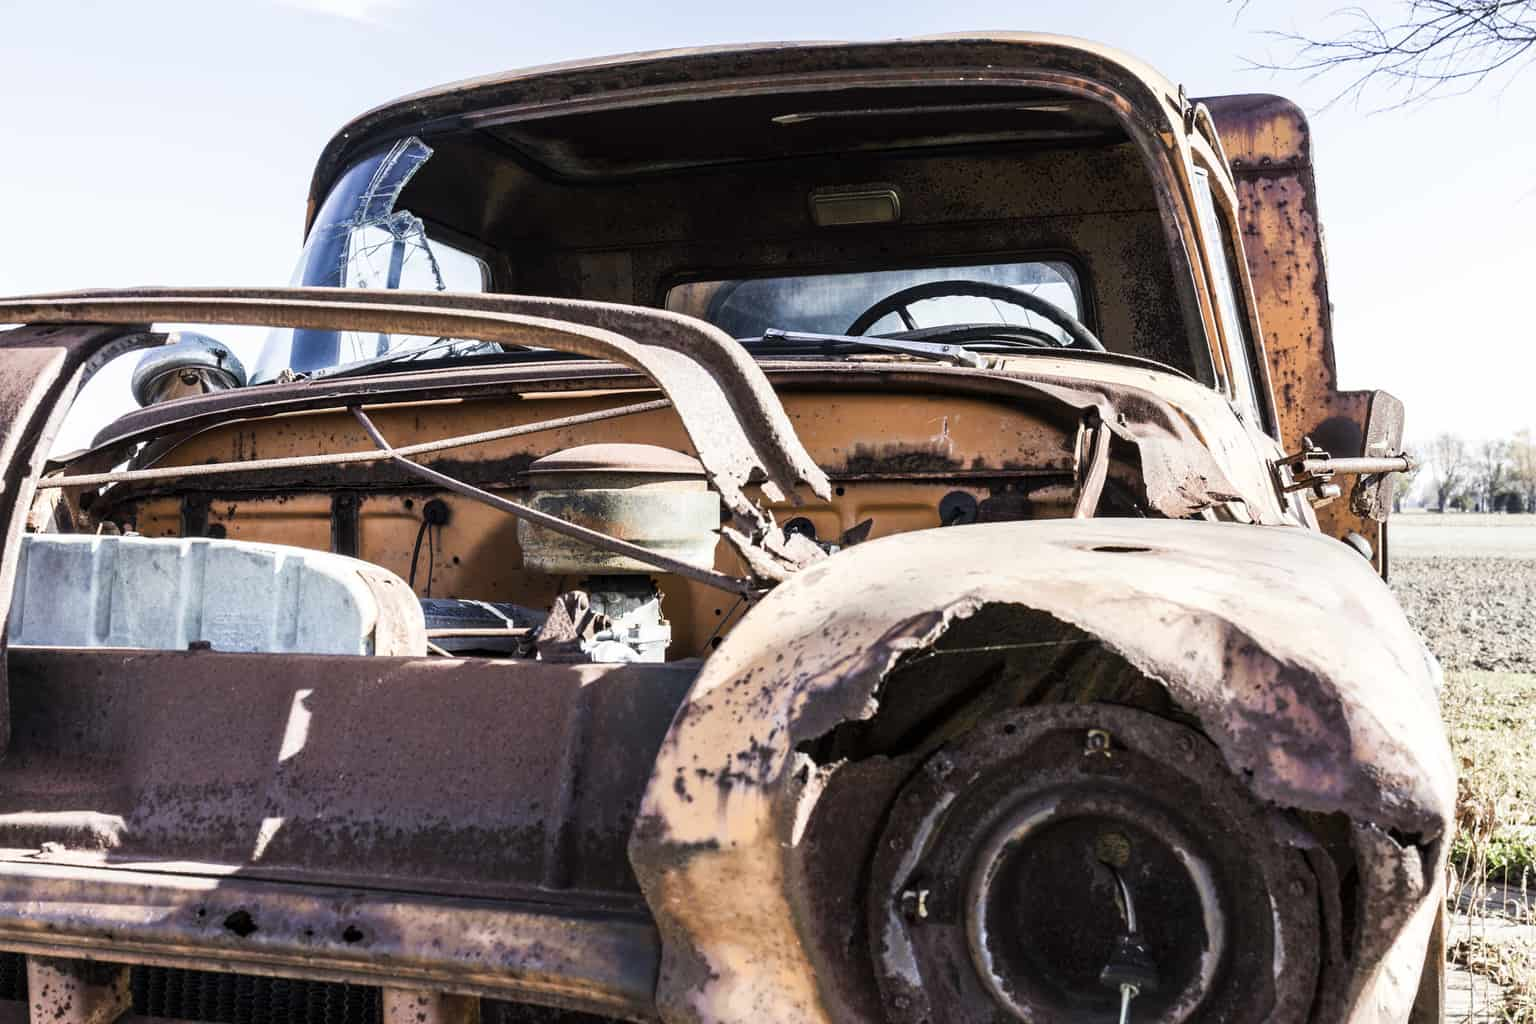 Things we can do with Wrecked cars - Sell car for cash - Sell wrecked car | Sellthecars